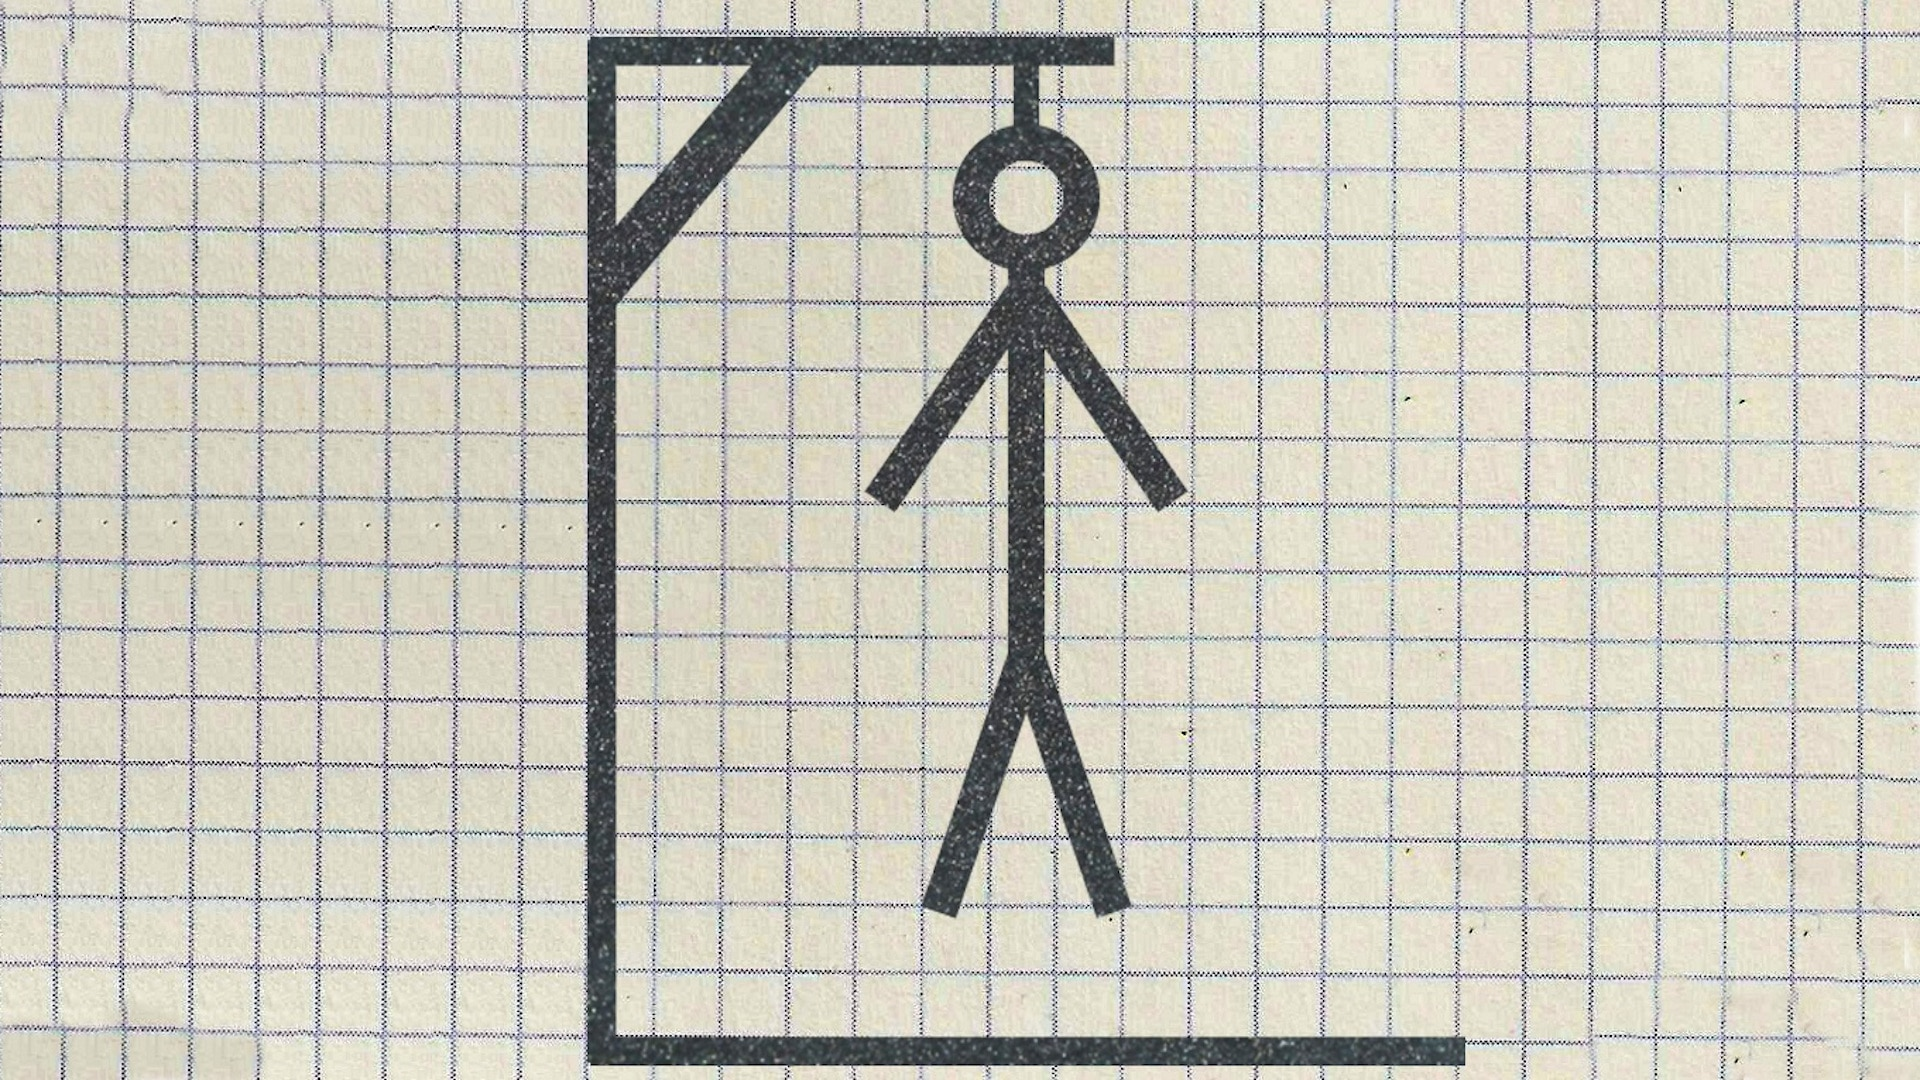 Hangman Rules of the Game and How to Play Guide